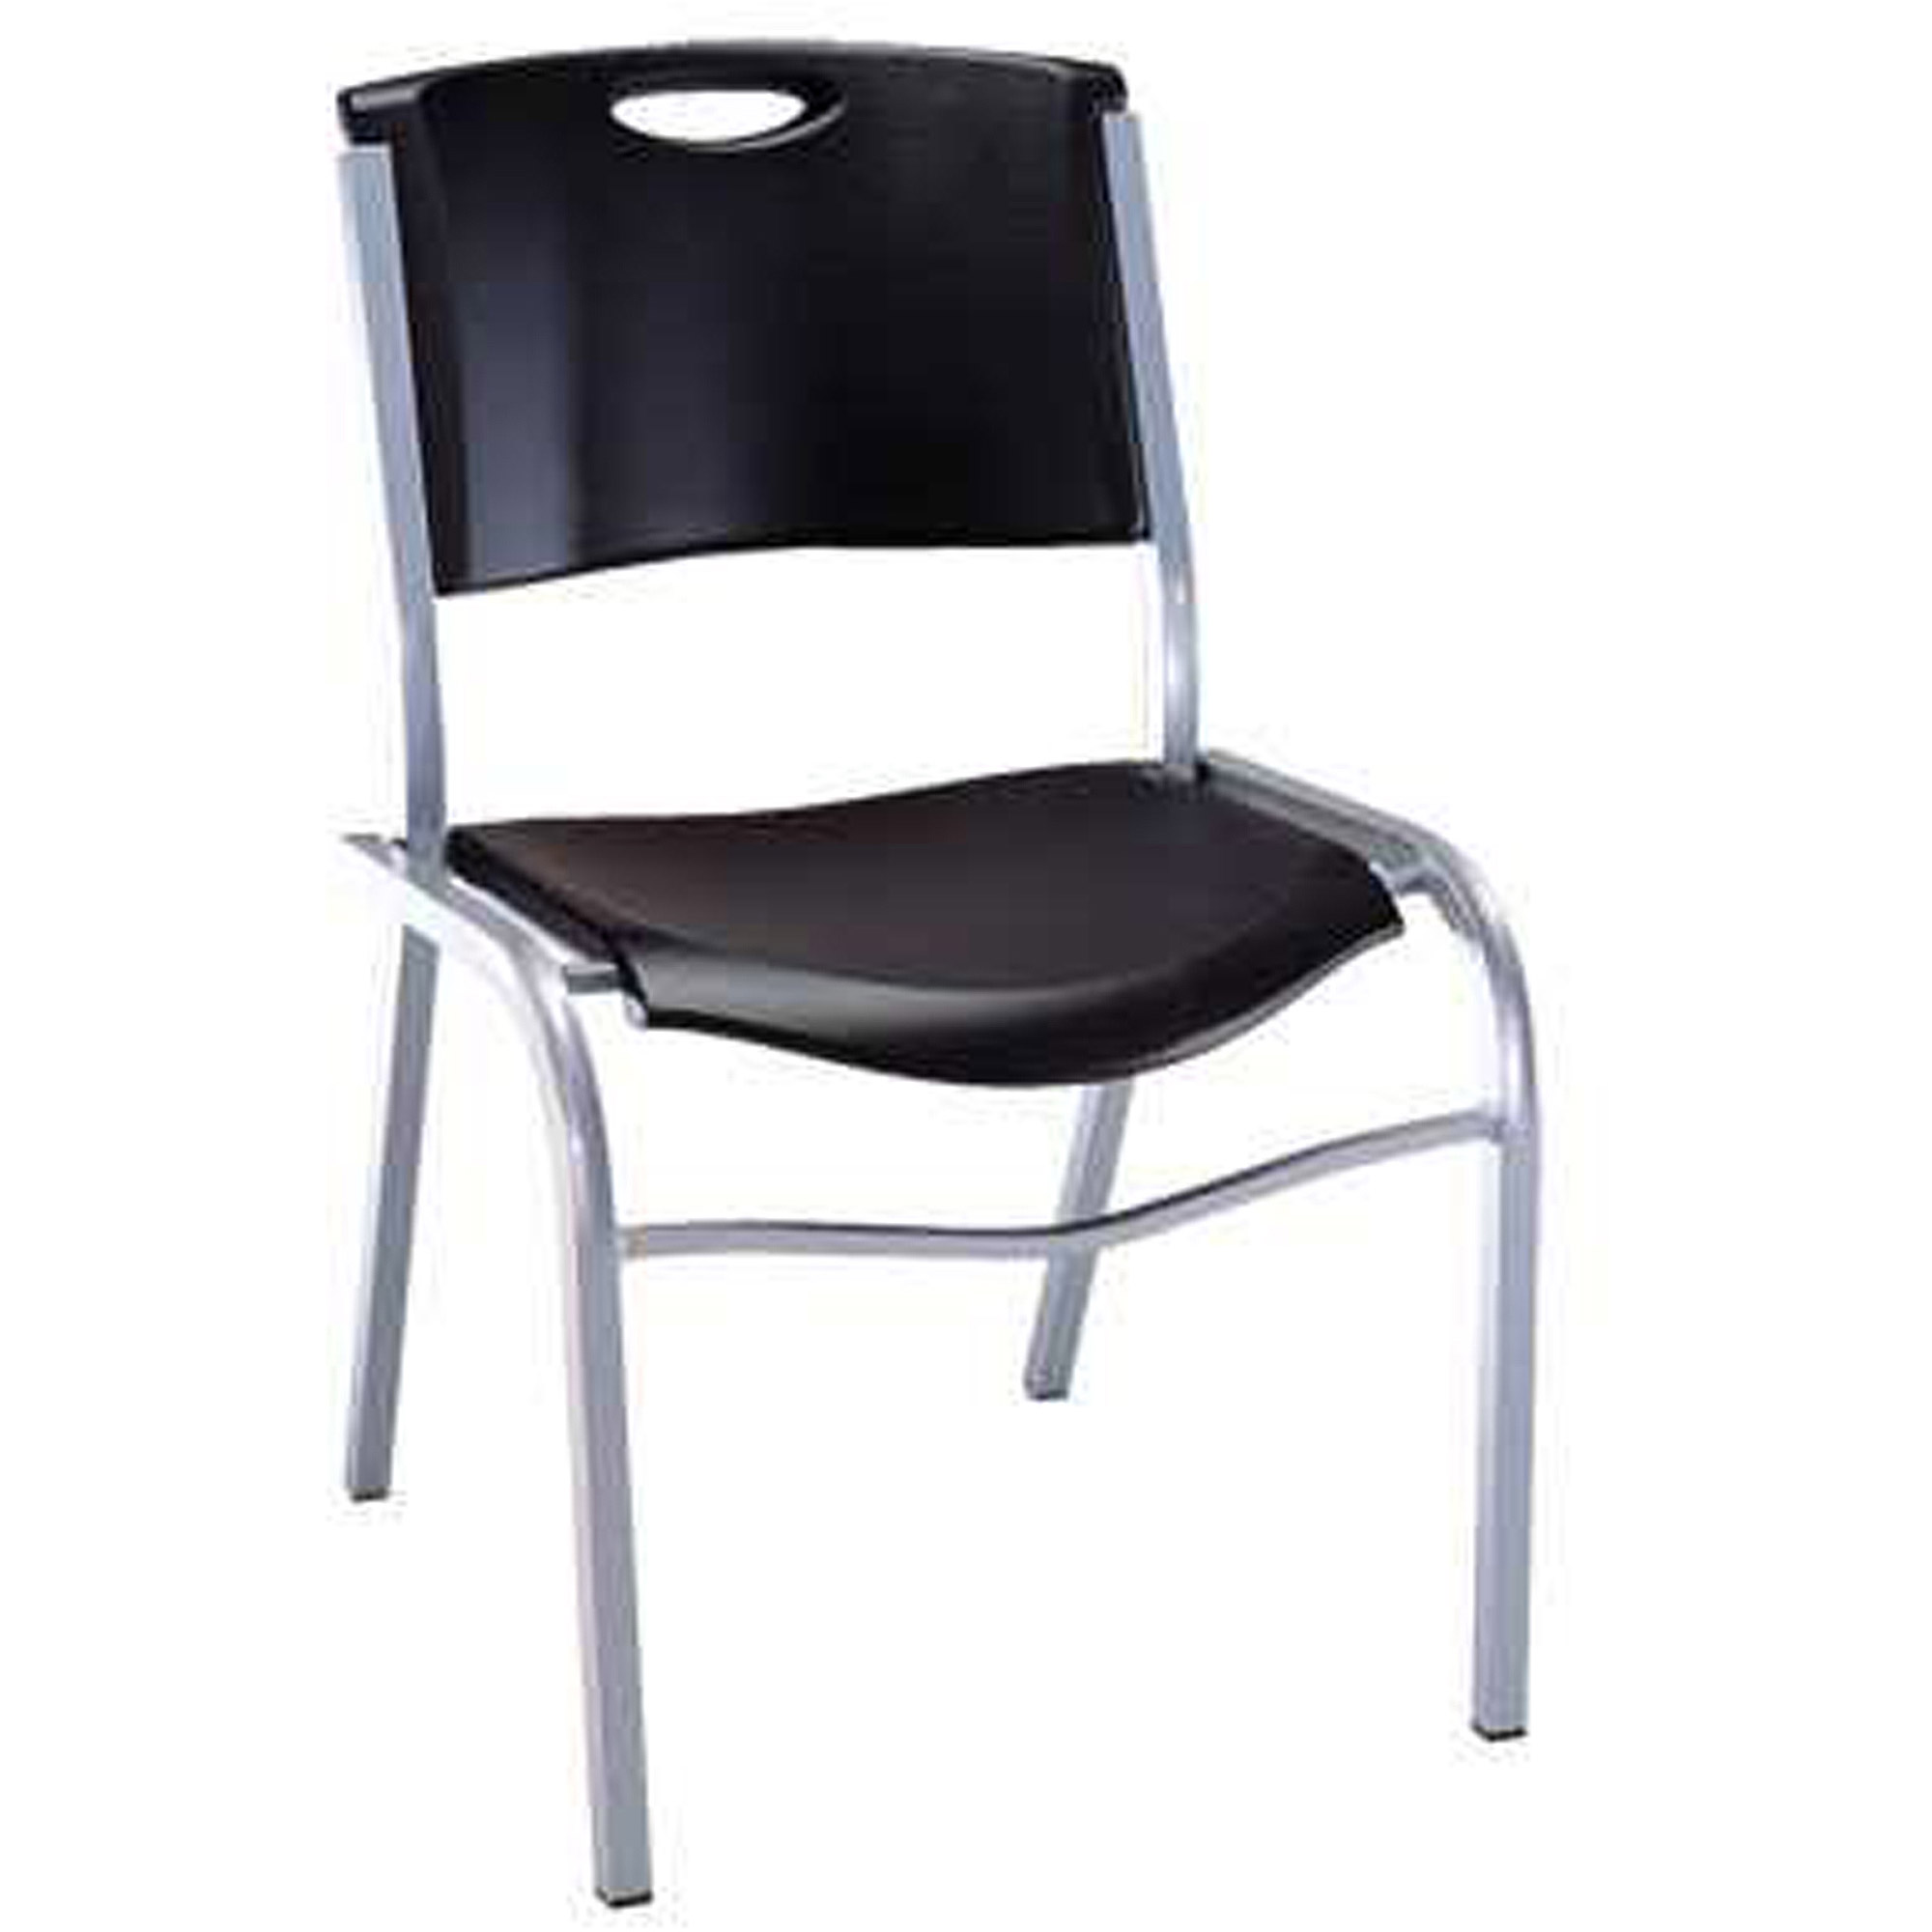 Lifetime Stacking Chair Black Set of 4 Walmart